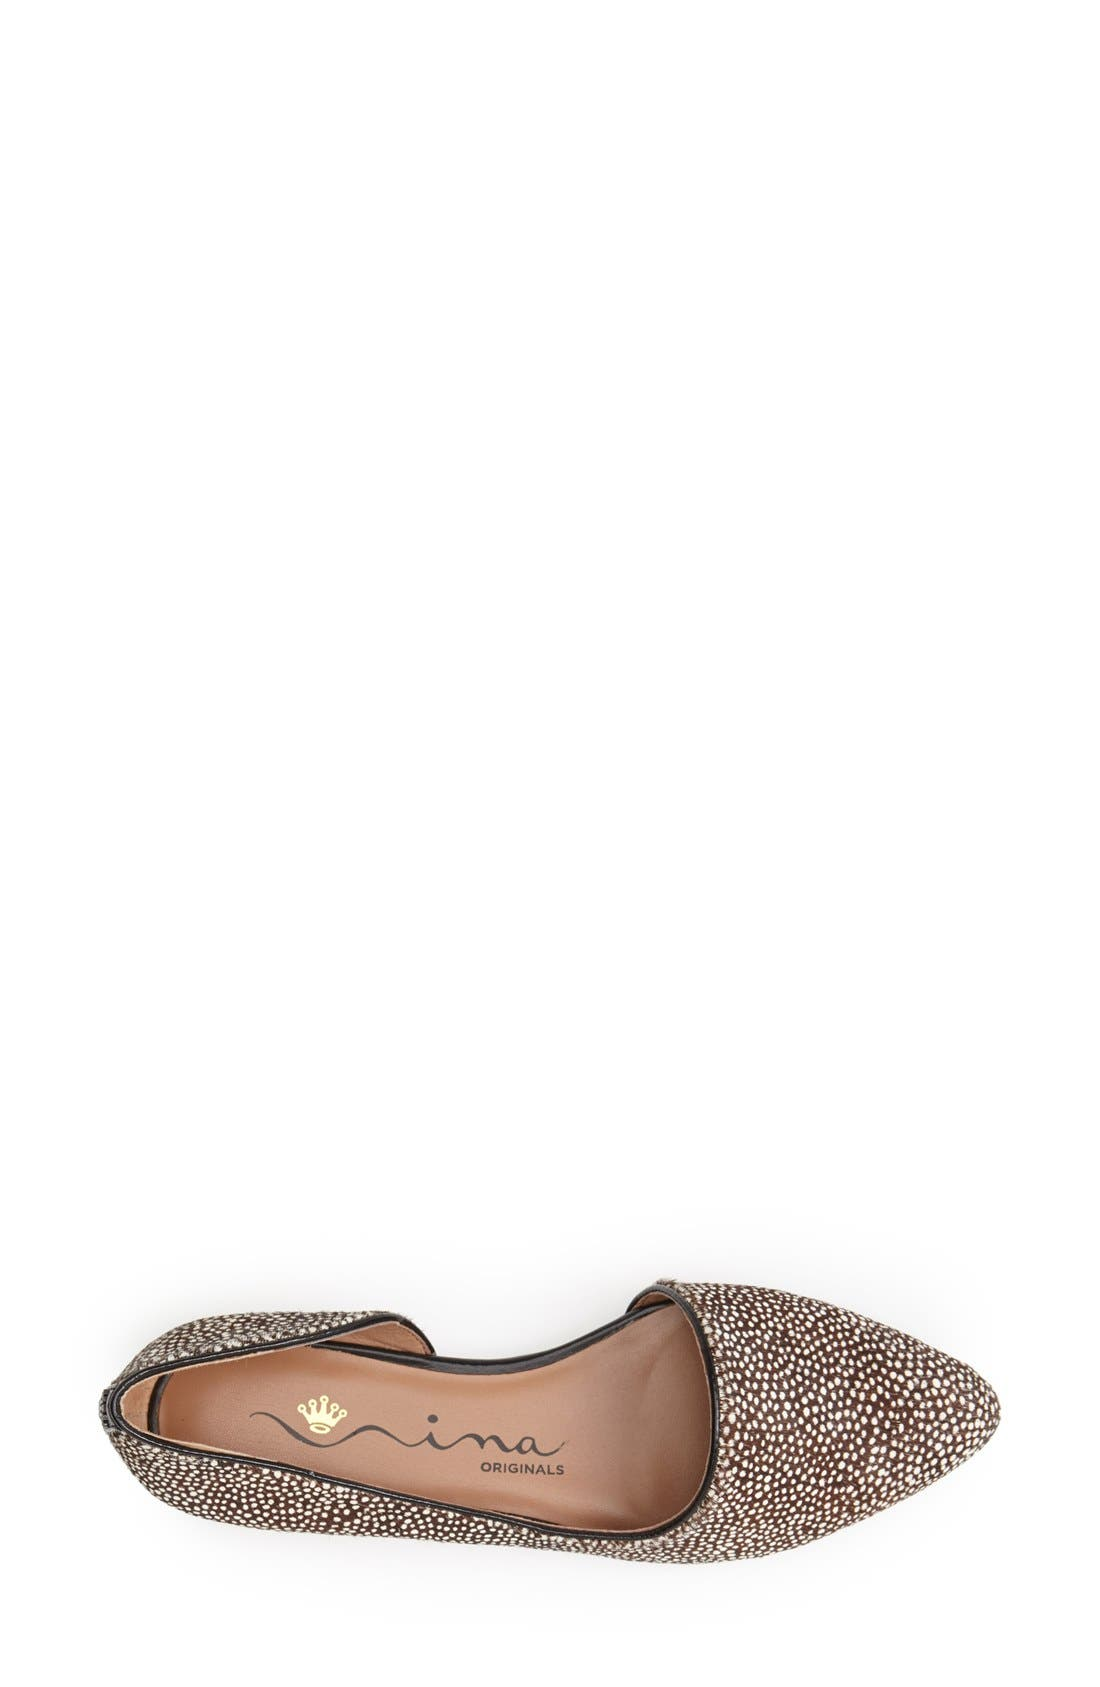 Alternate Image 3  - Nina Originals 'Quip' Calf Hair Pointed Toe Flat (Women)